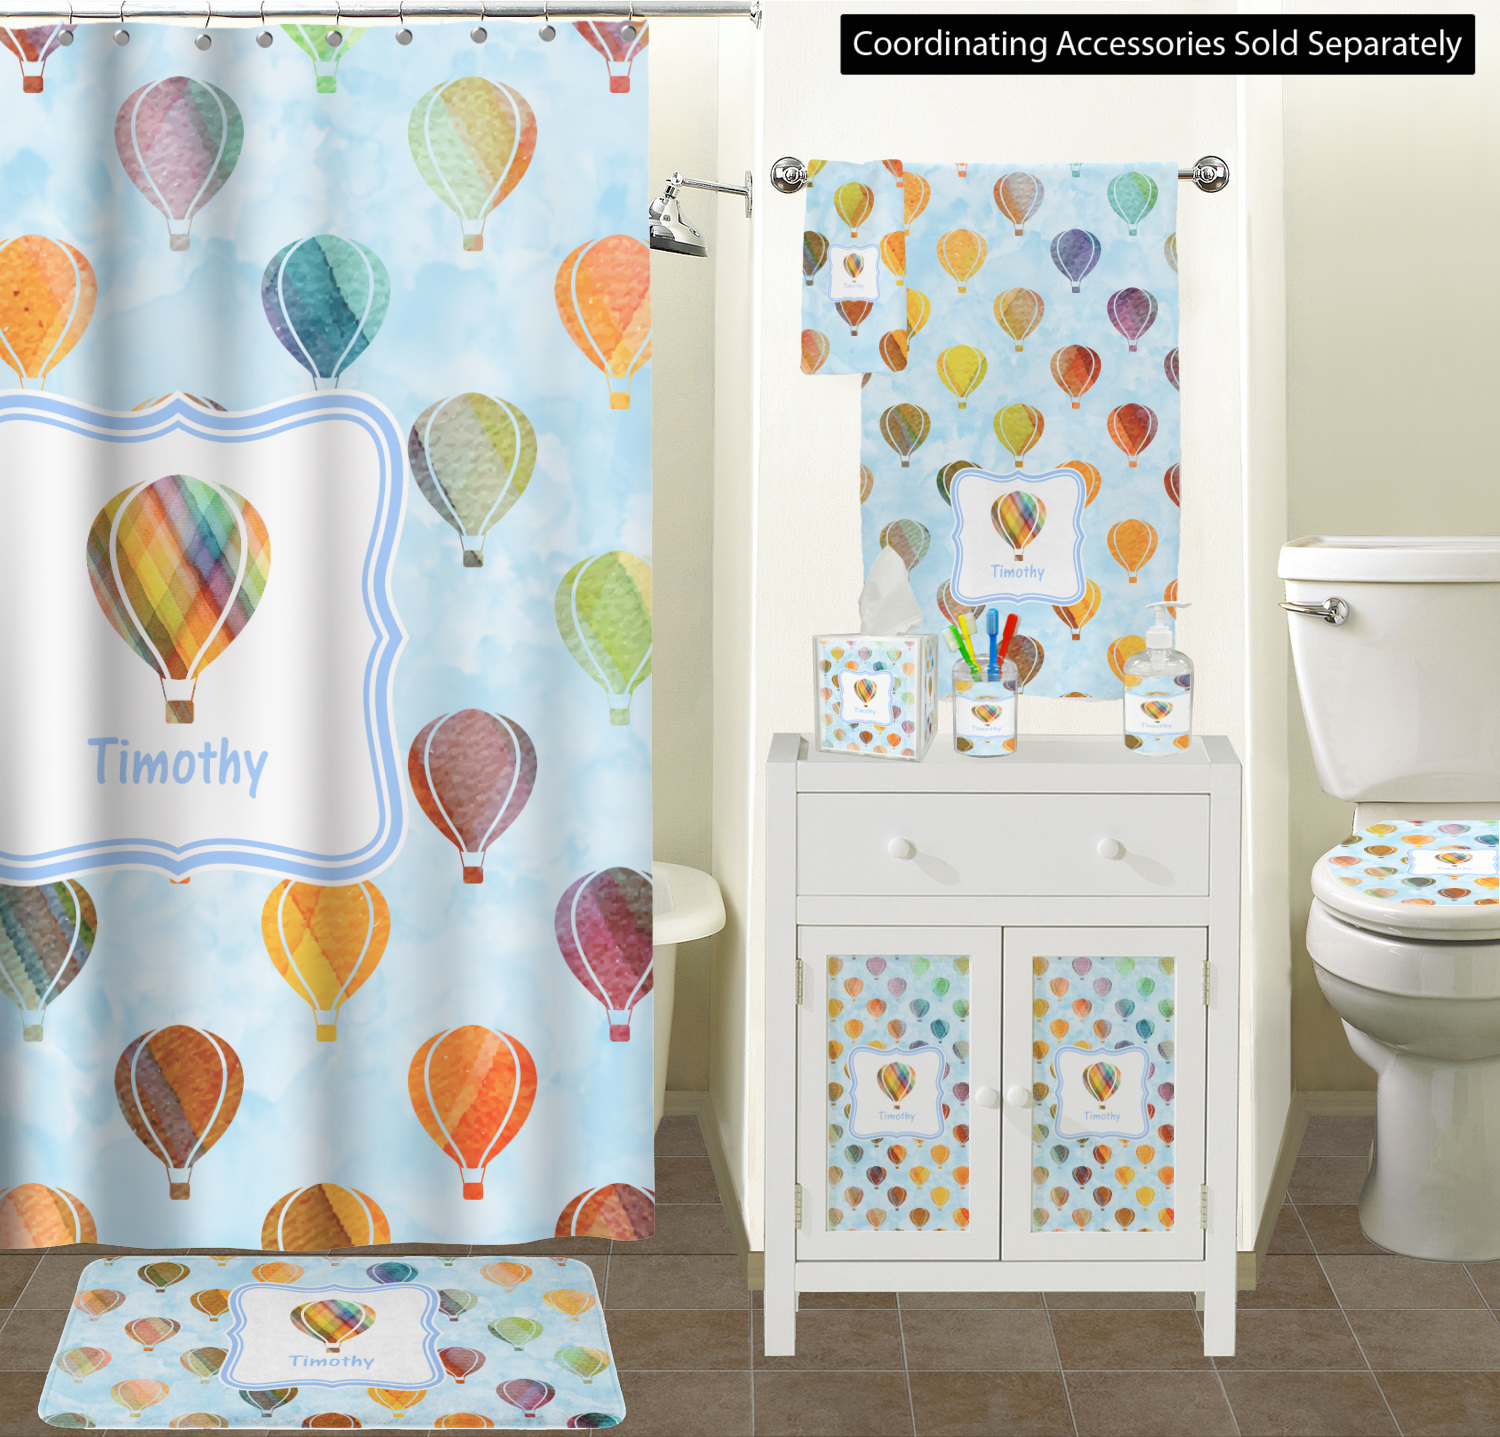 Watercolor Hot Air Balloons Bathroom Accessories Set Personalized